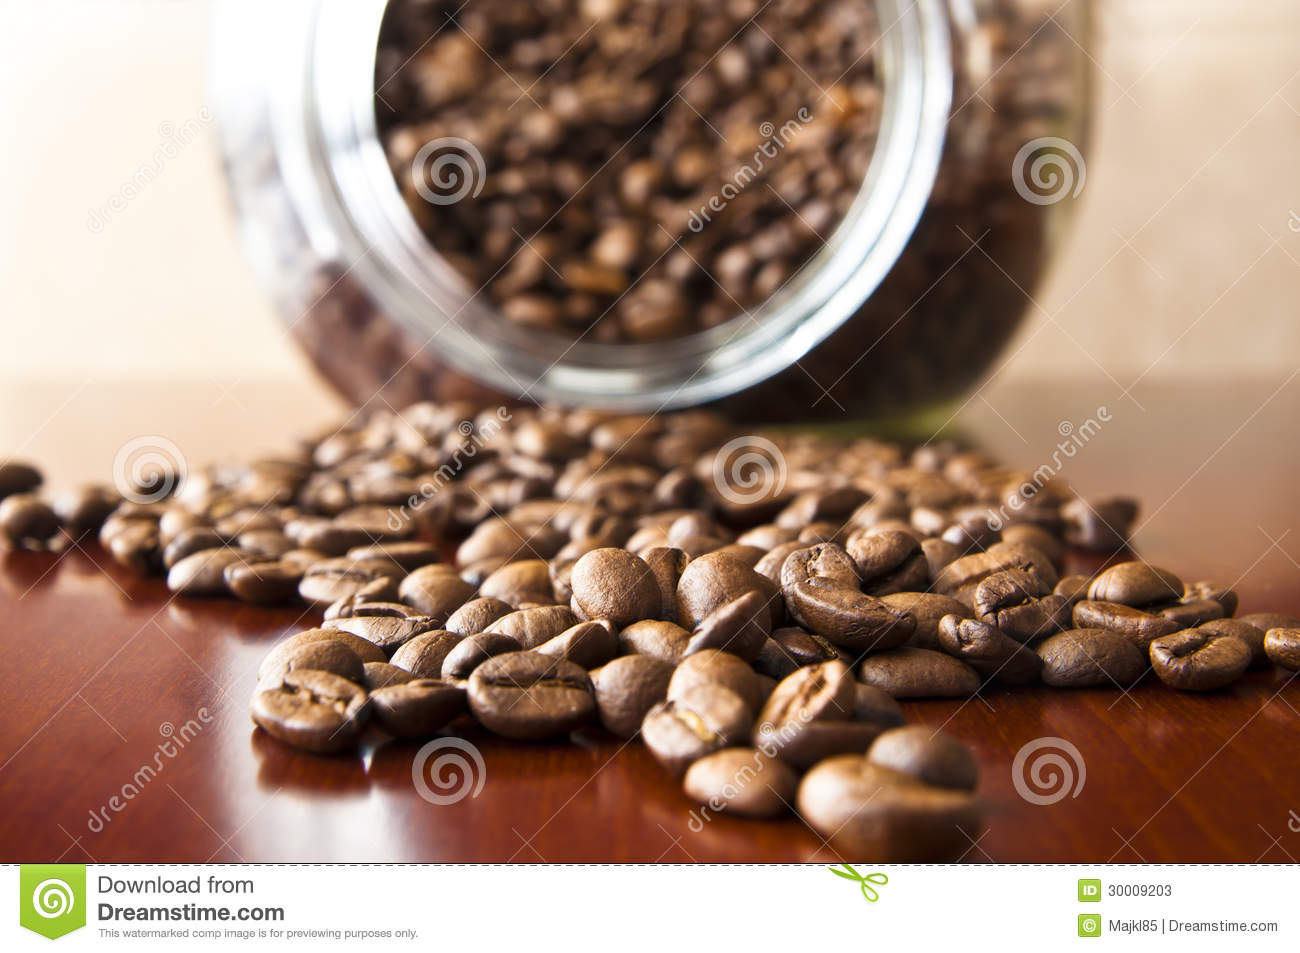 coffee grain on a wooden table stock image image 30009203. Black Bedroom Furniture Sets. Home Design Ideas